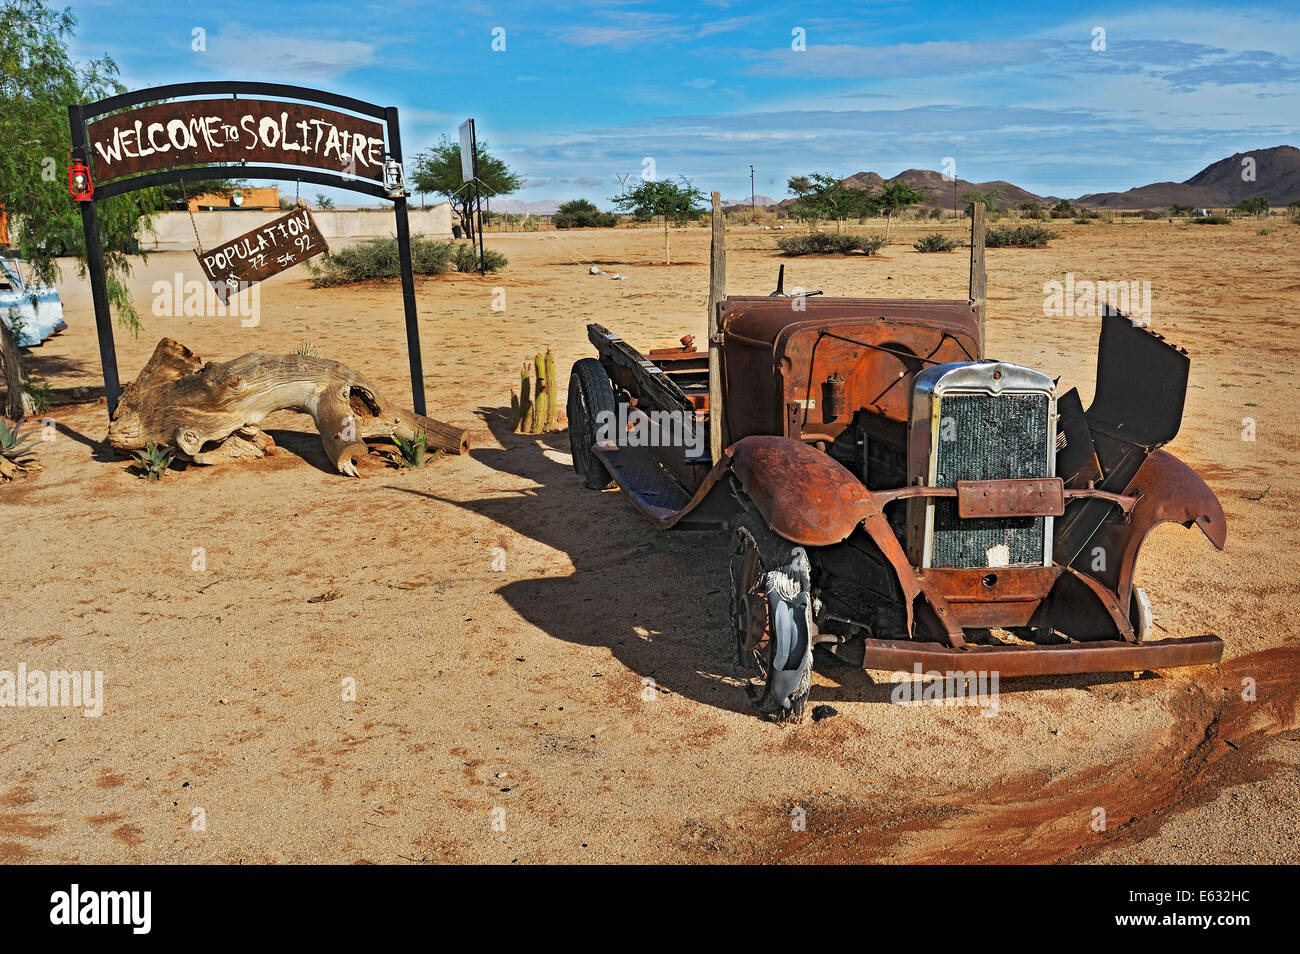 Car wreck, Solitaire, historically Areb, since 1848 a small private settlement on the same named farm - Stock Image